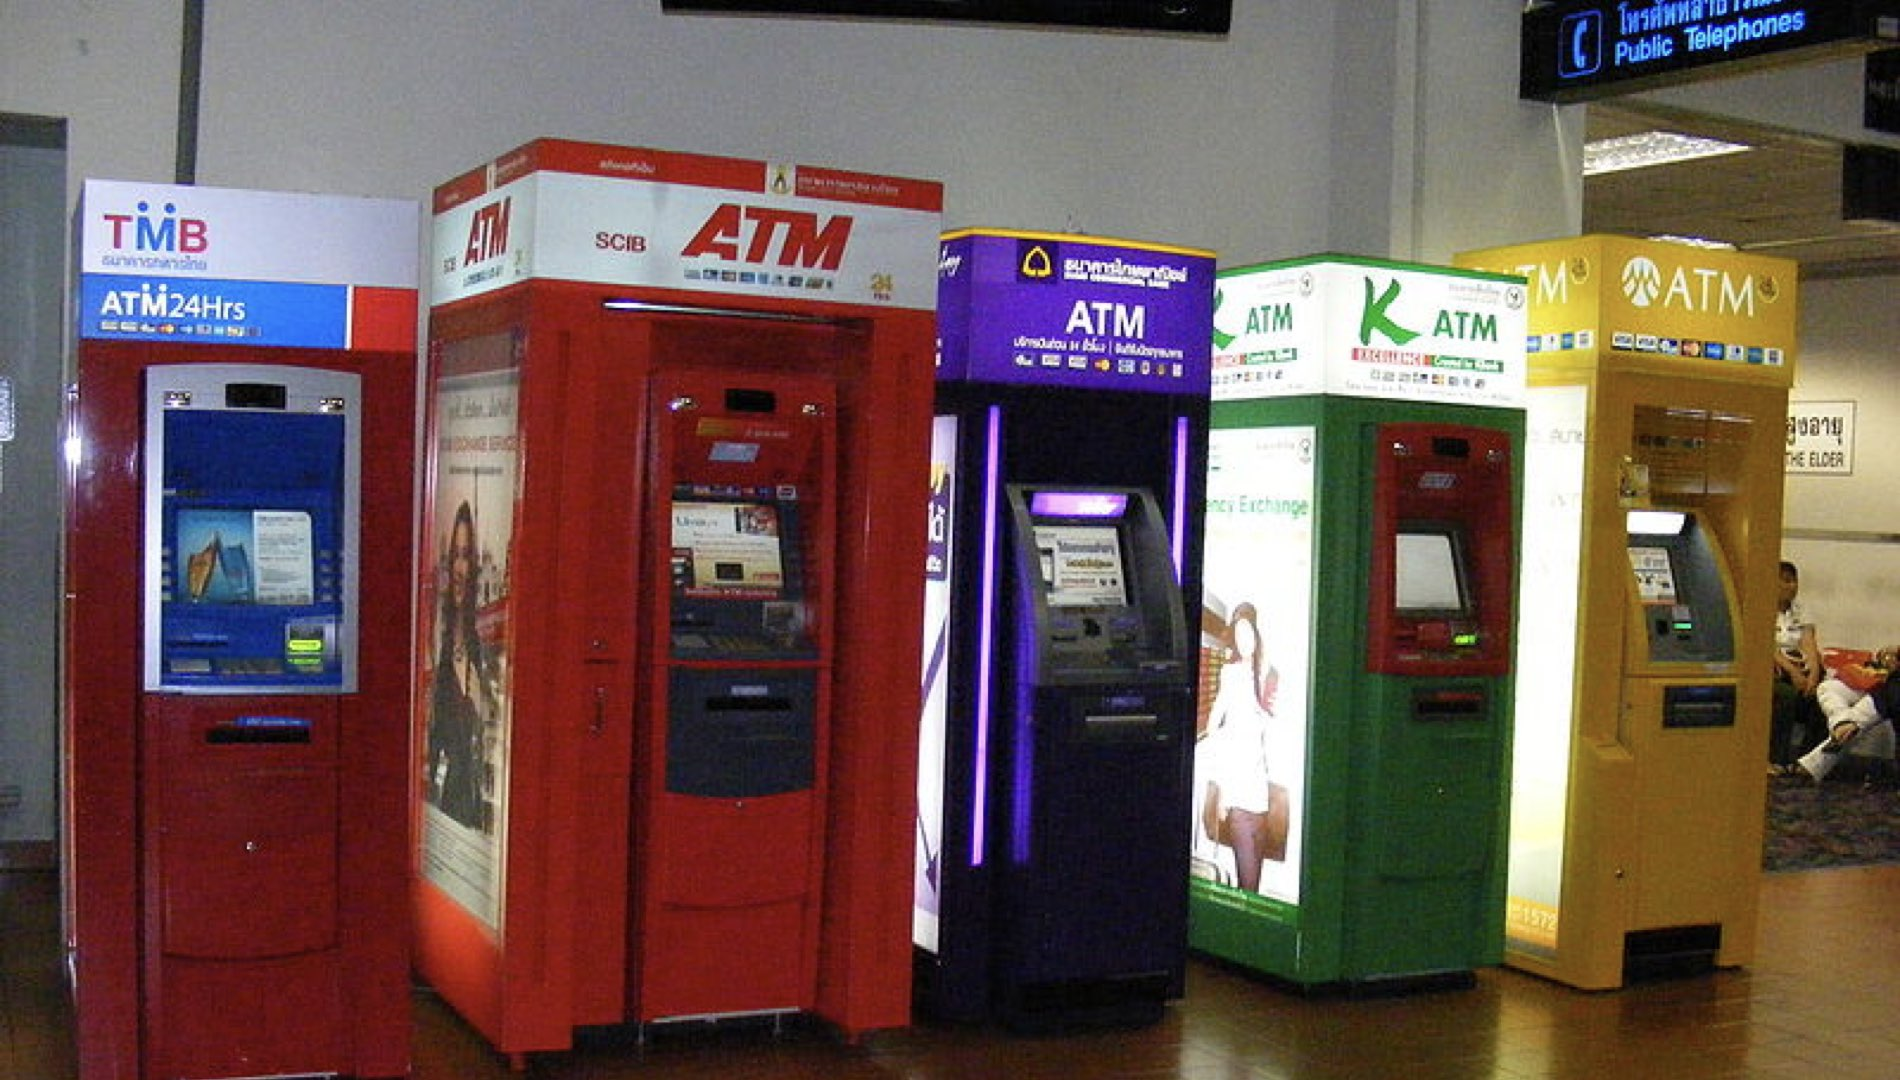 Kiosks at an airport